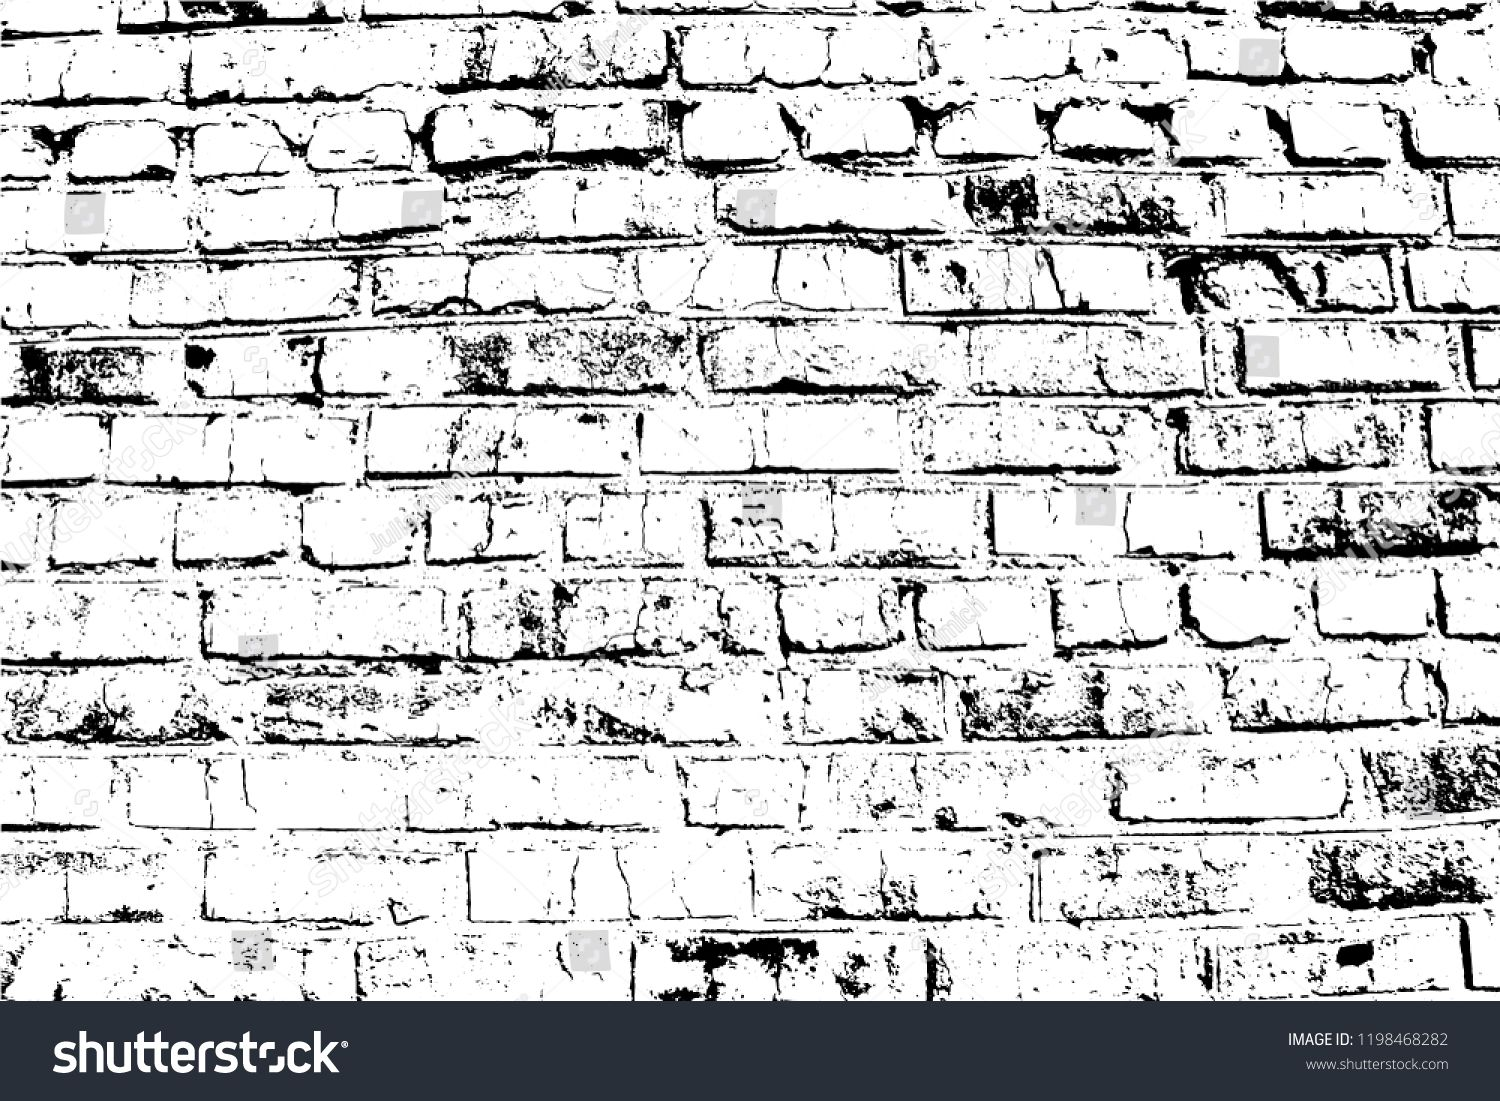 Vector Bricks And Stones Texture Abstract Background Old Brick Wall Overlay Illustration Over Any Design To Create G Brick Texture Old Bricks Textured Walls